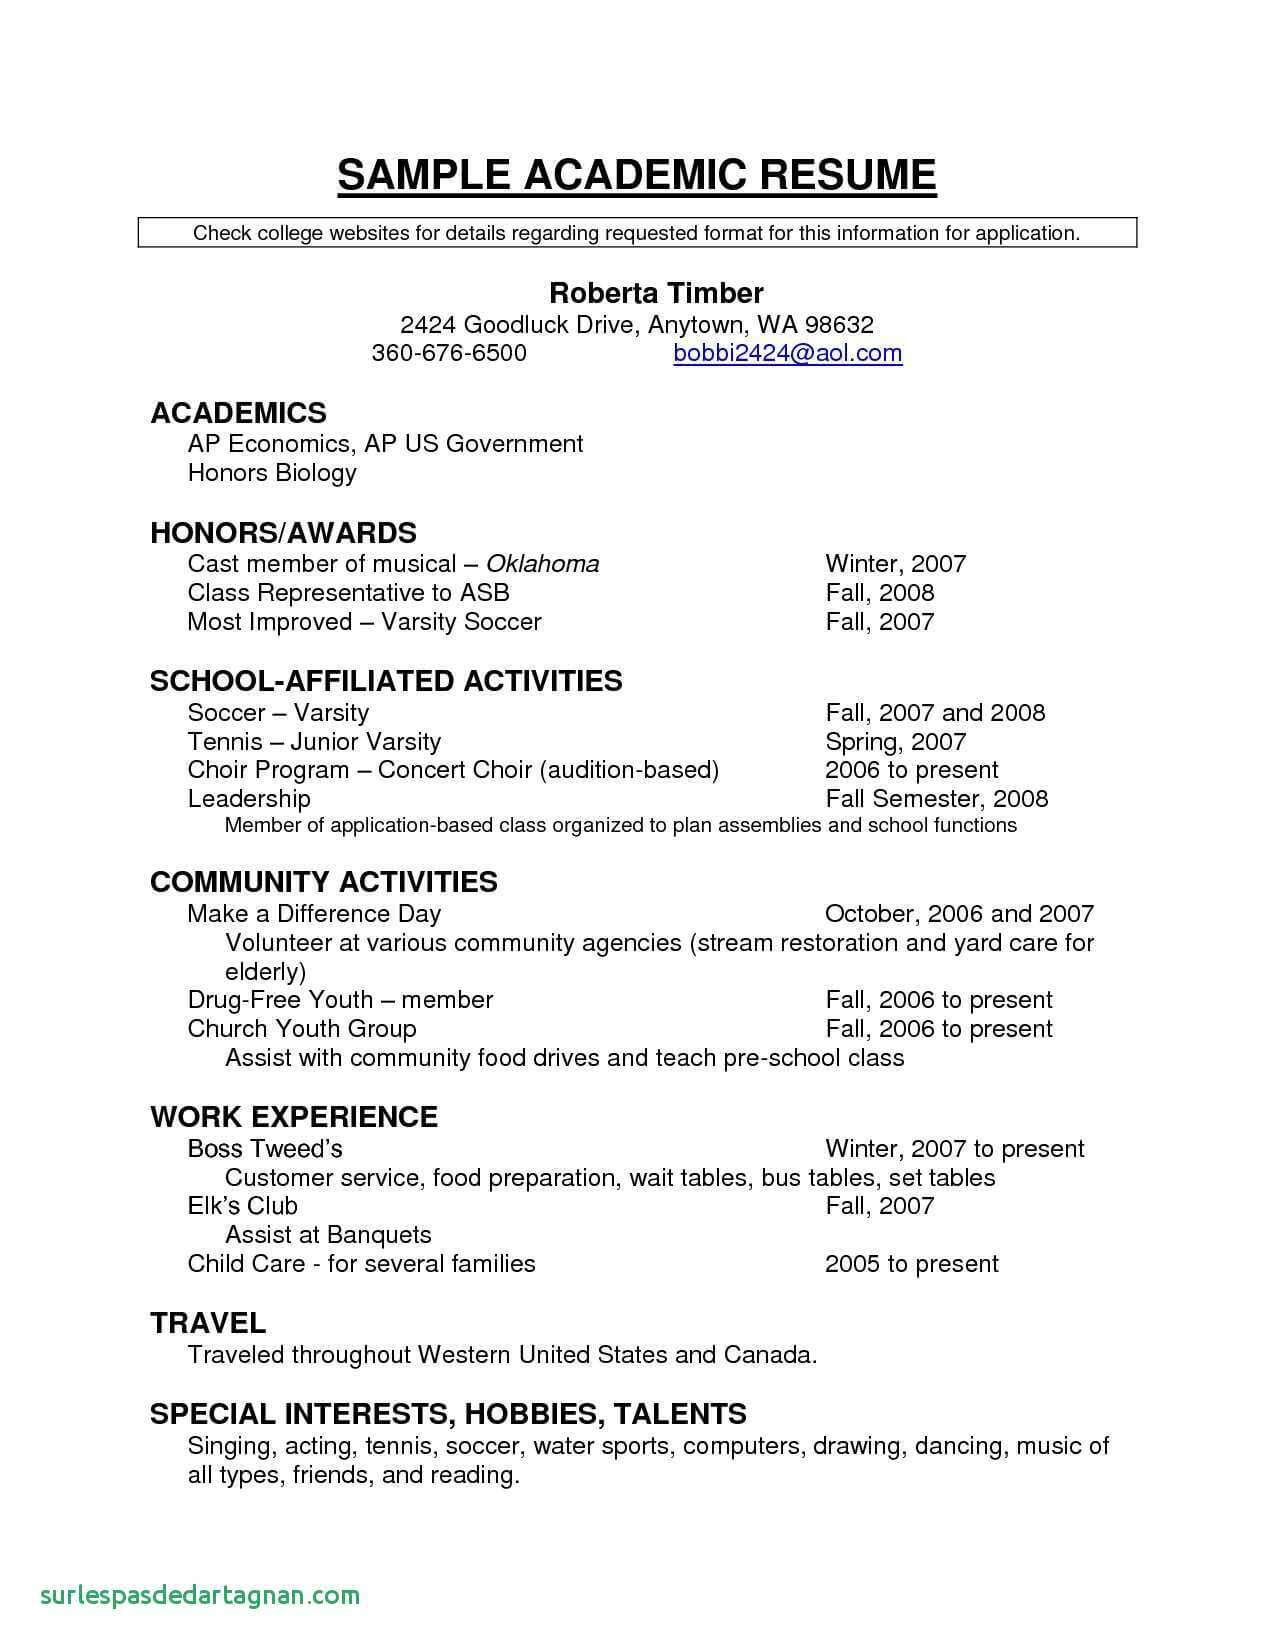 11 Resume Template For 16 Year Old Ideas | Resume Ideas Pertaining To 16 Year Old Resume